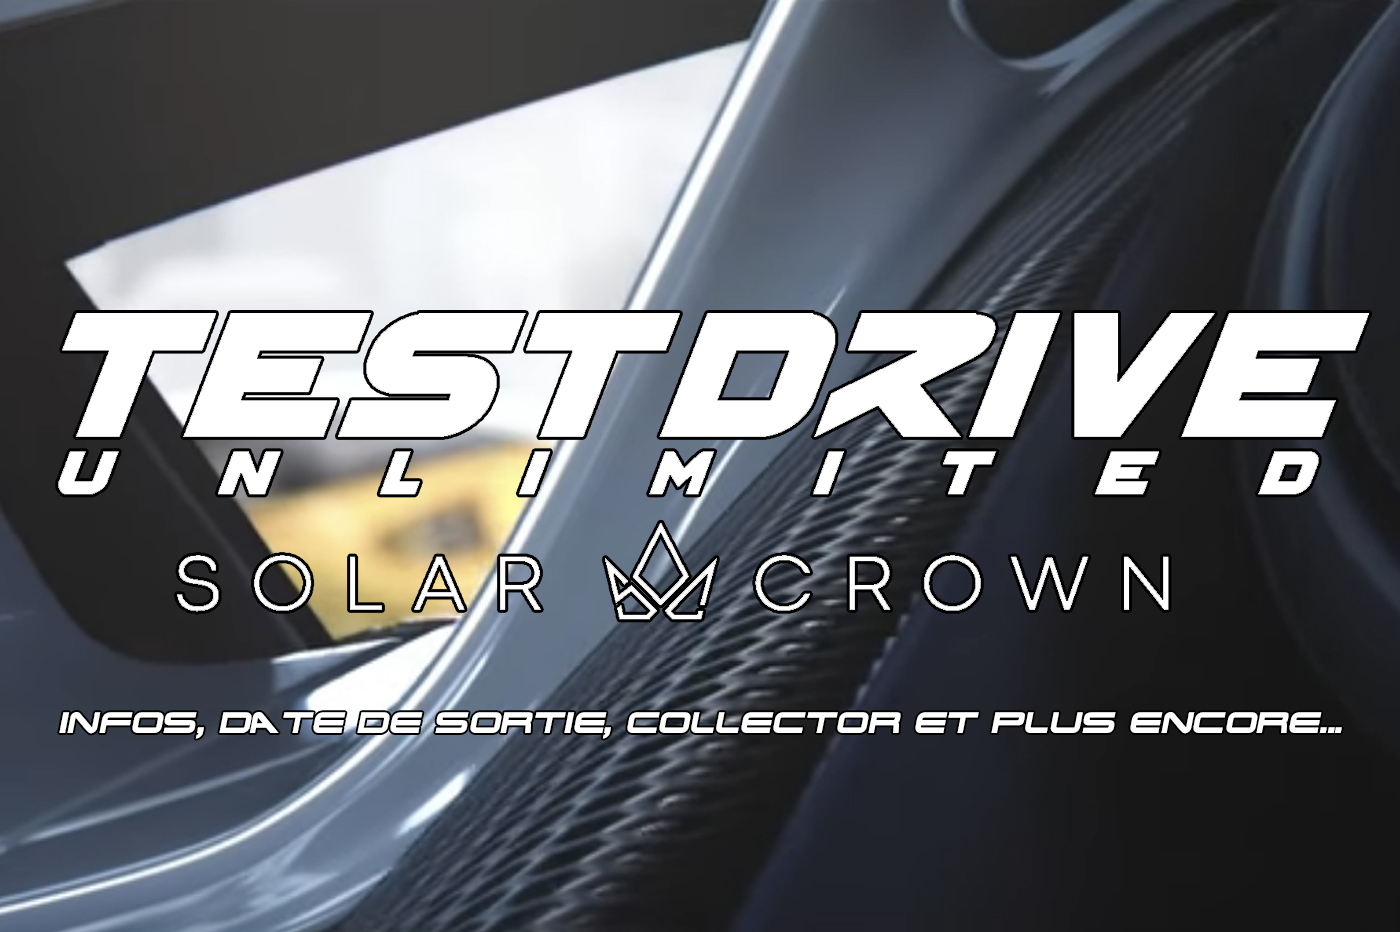 Test Drive Unlimited Solar Crown Infos, date de sortie, collector et plus